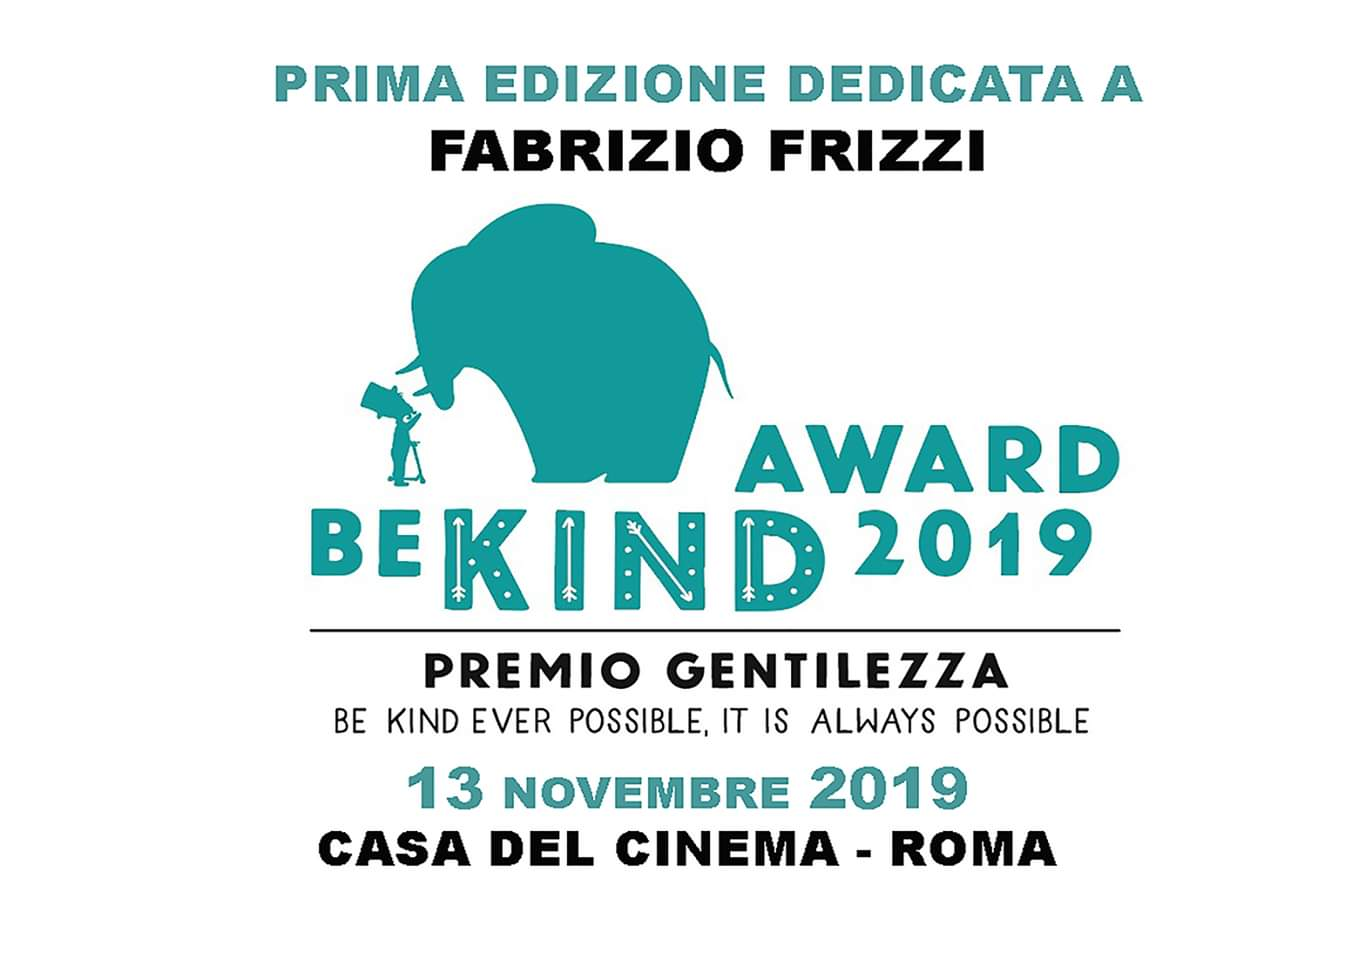 BE-KIND-AWARD